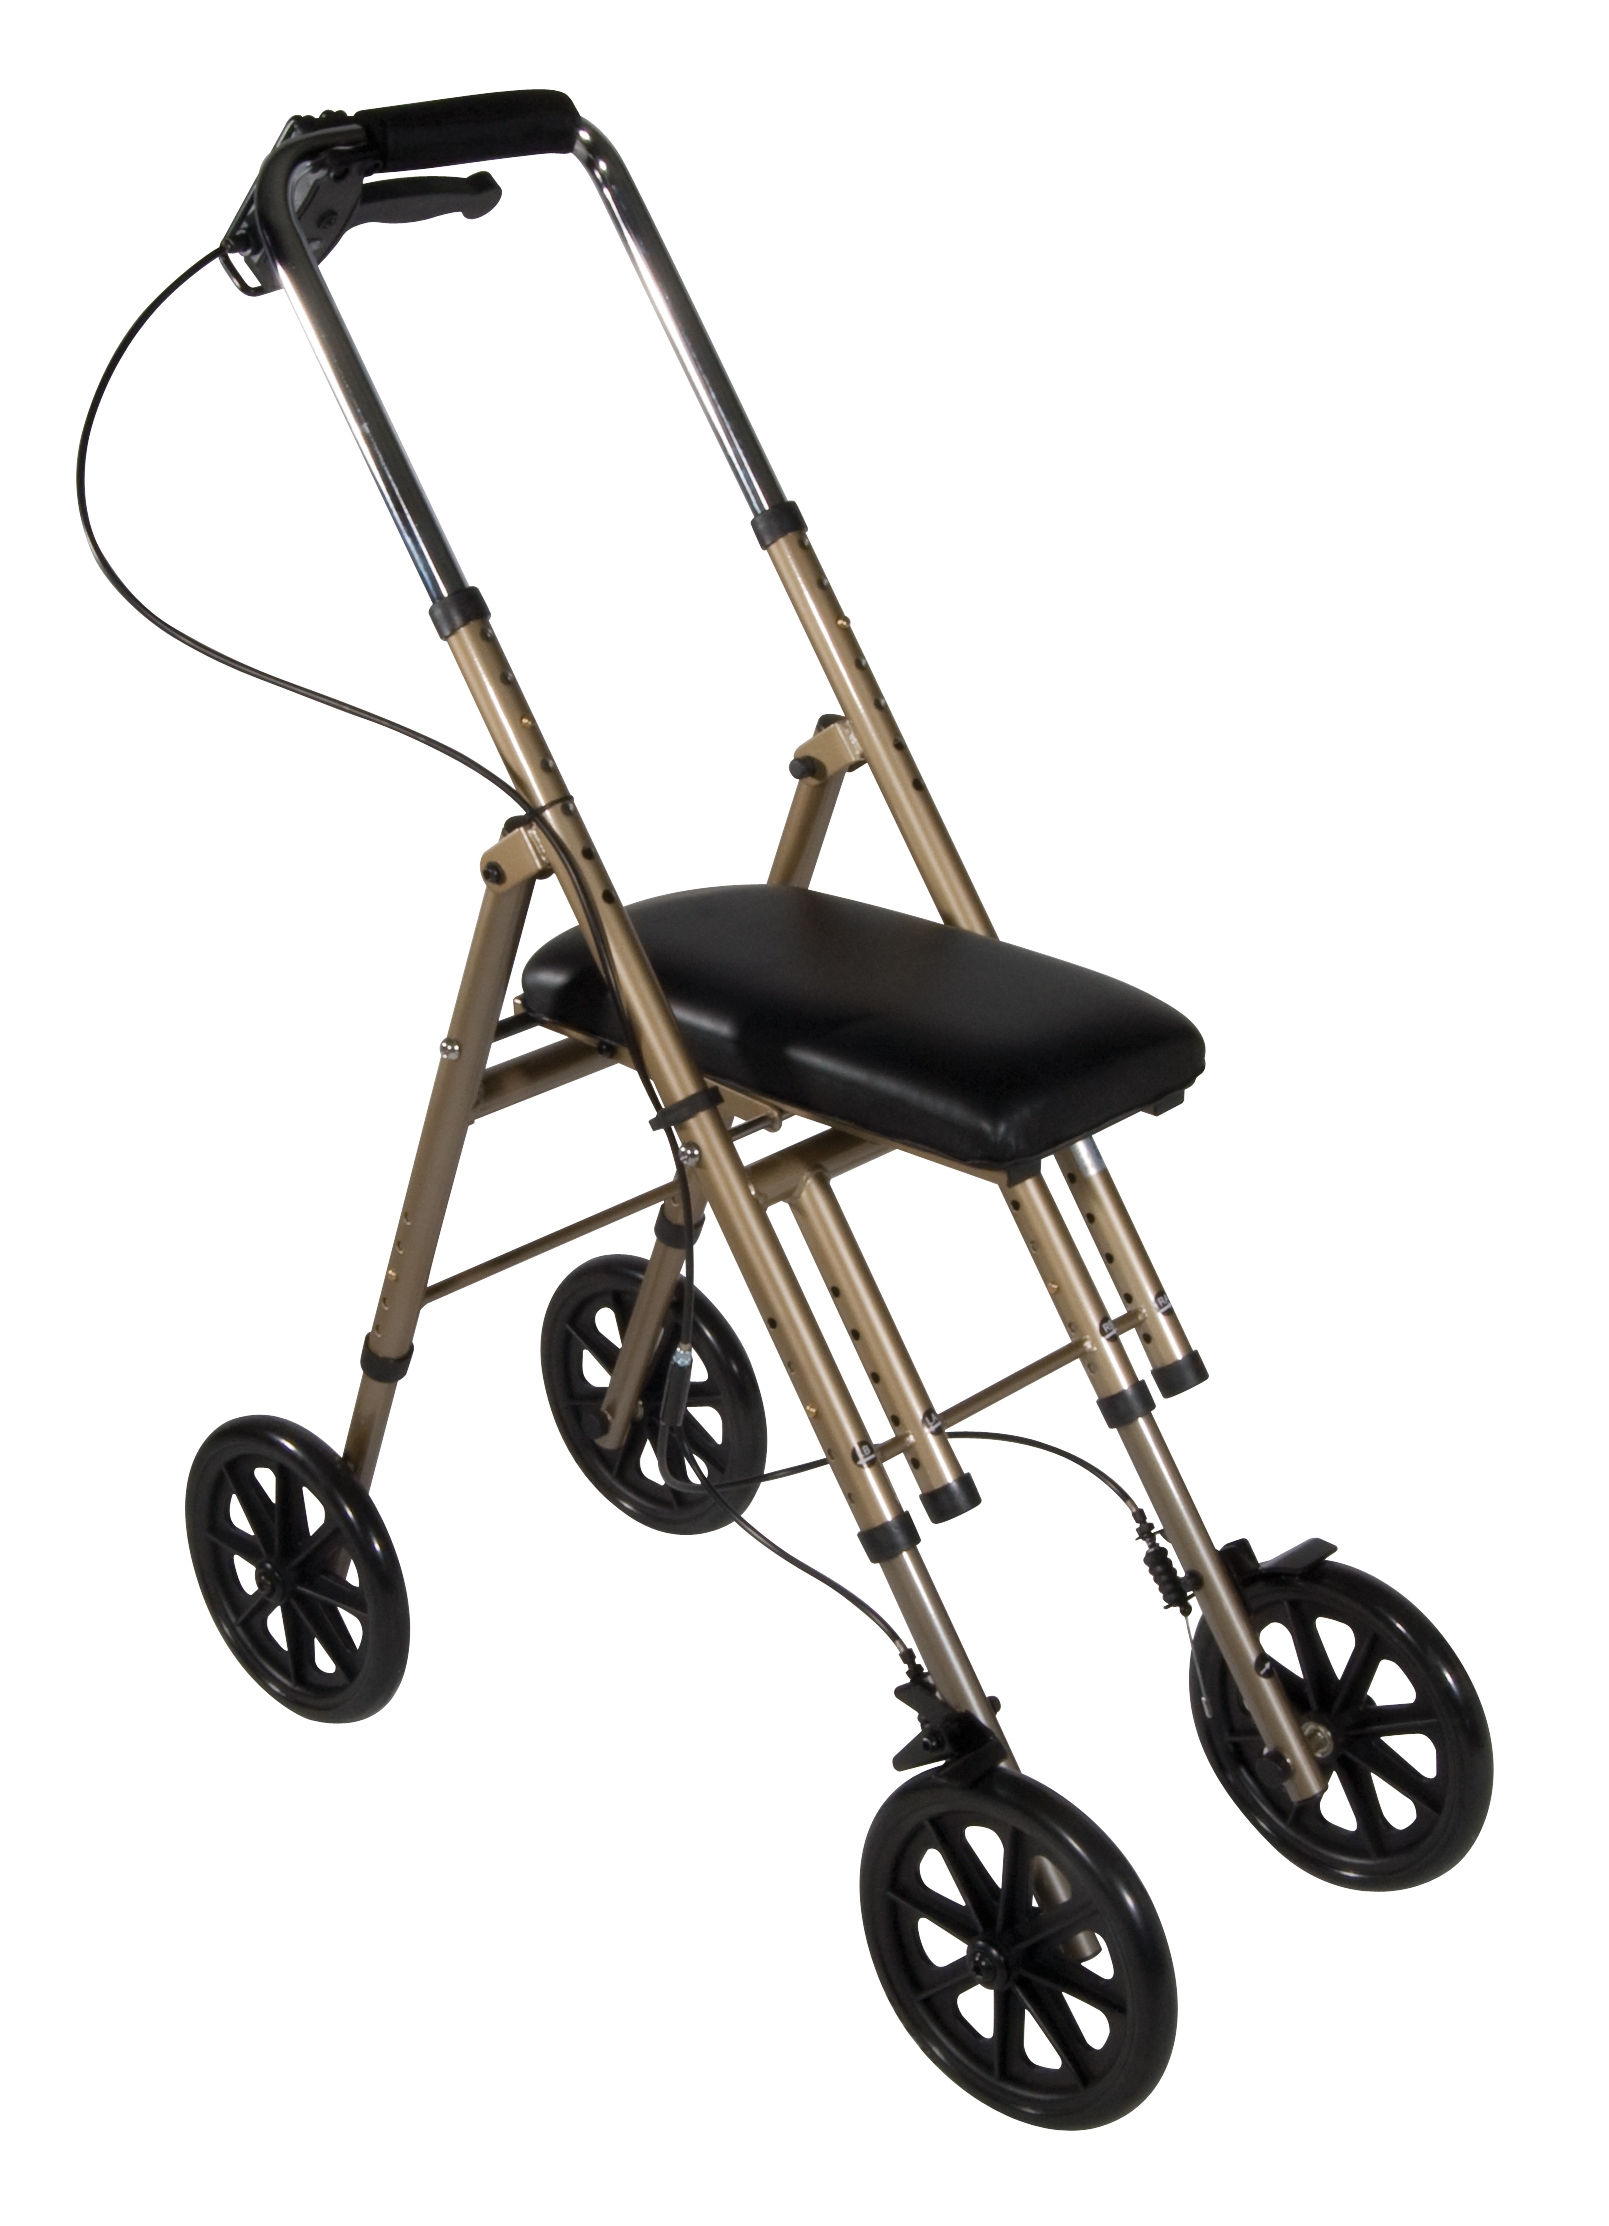 Drive Medical - Adult Knee Walker Crutch Alternative